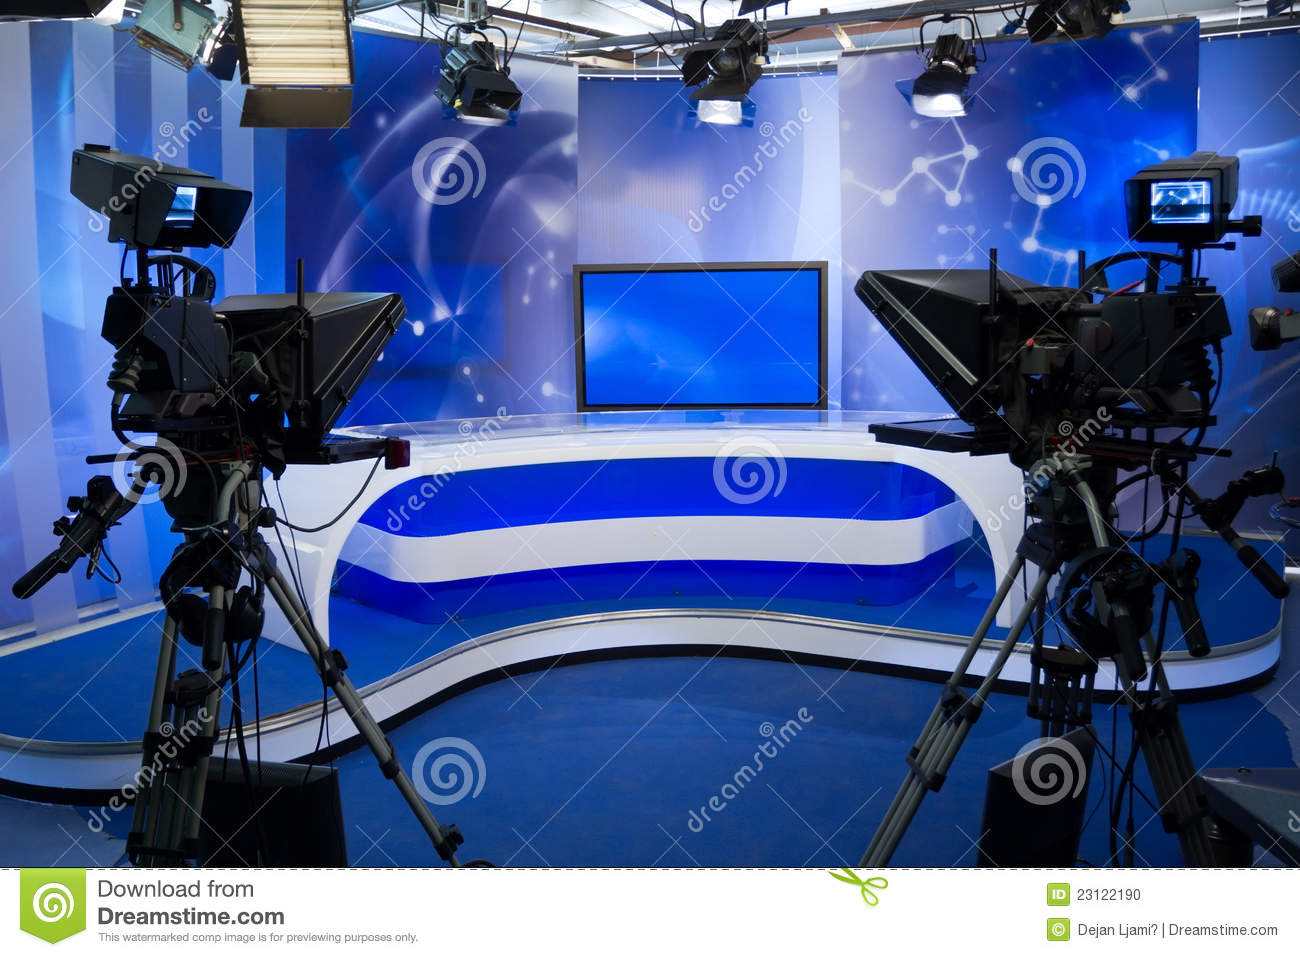 an introduction to the television studio lighting To set up a tv station, an elementary school will need basic video, audio, recording, lighting and editing equipment studio and lighting the school will need a space to house the television studio and equipment.